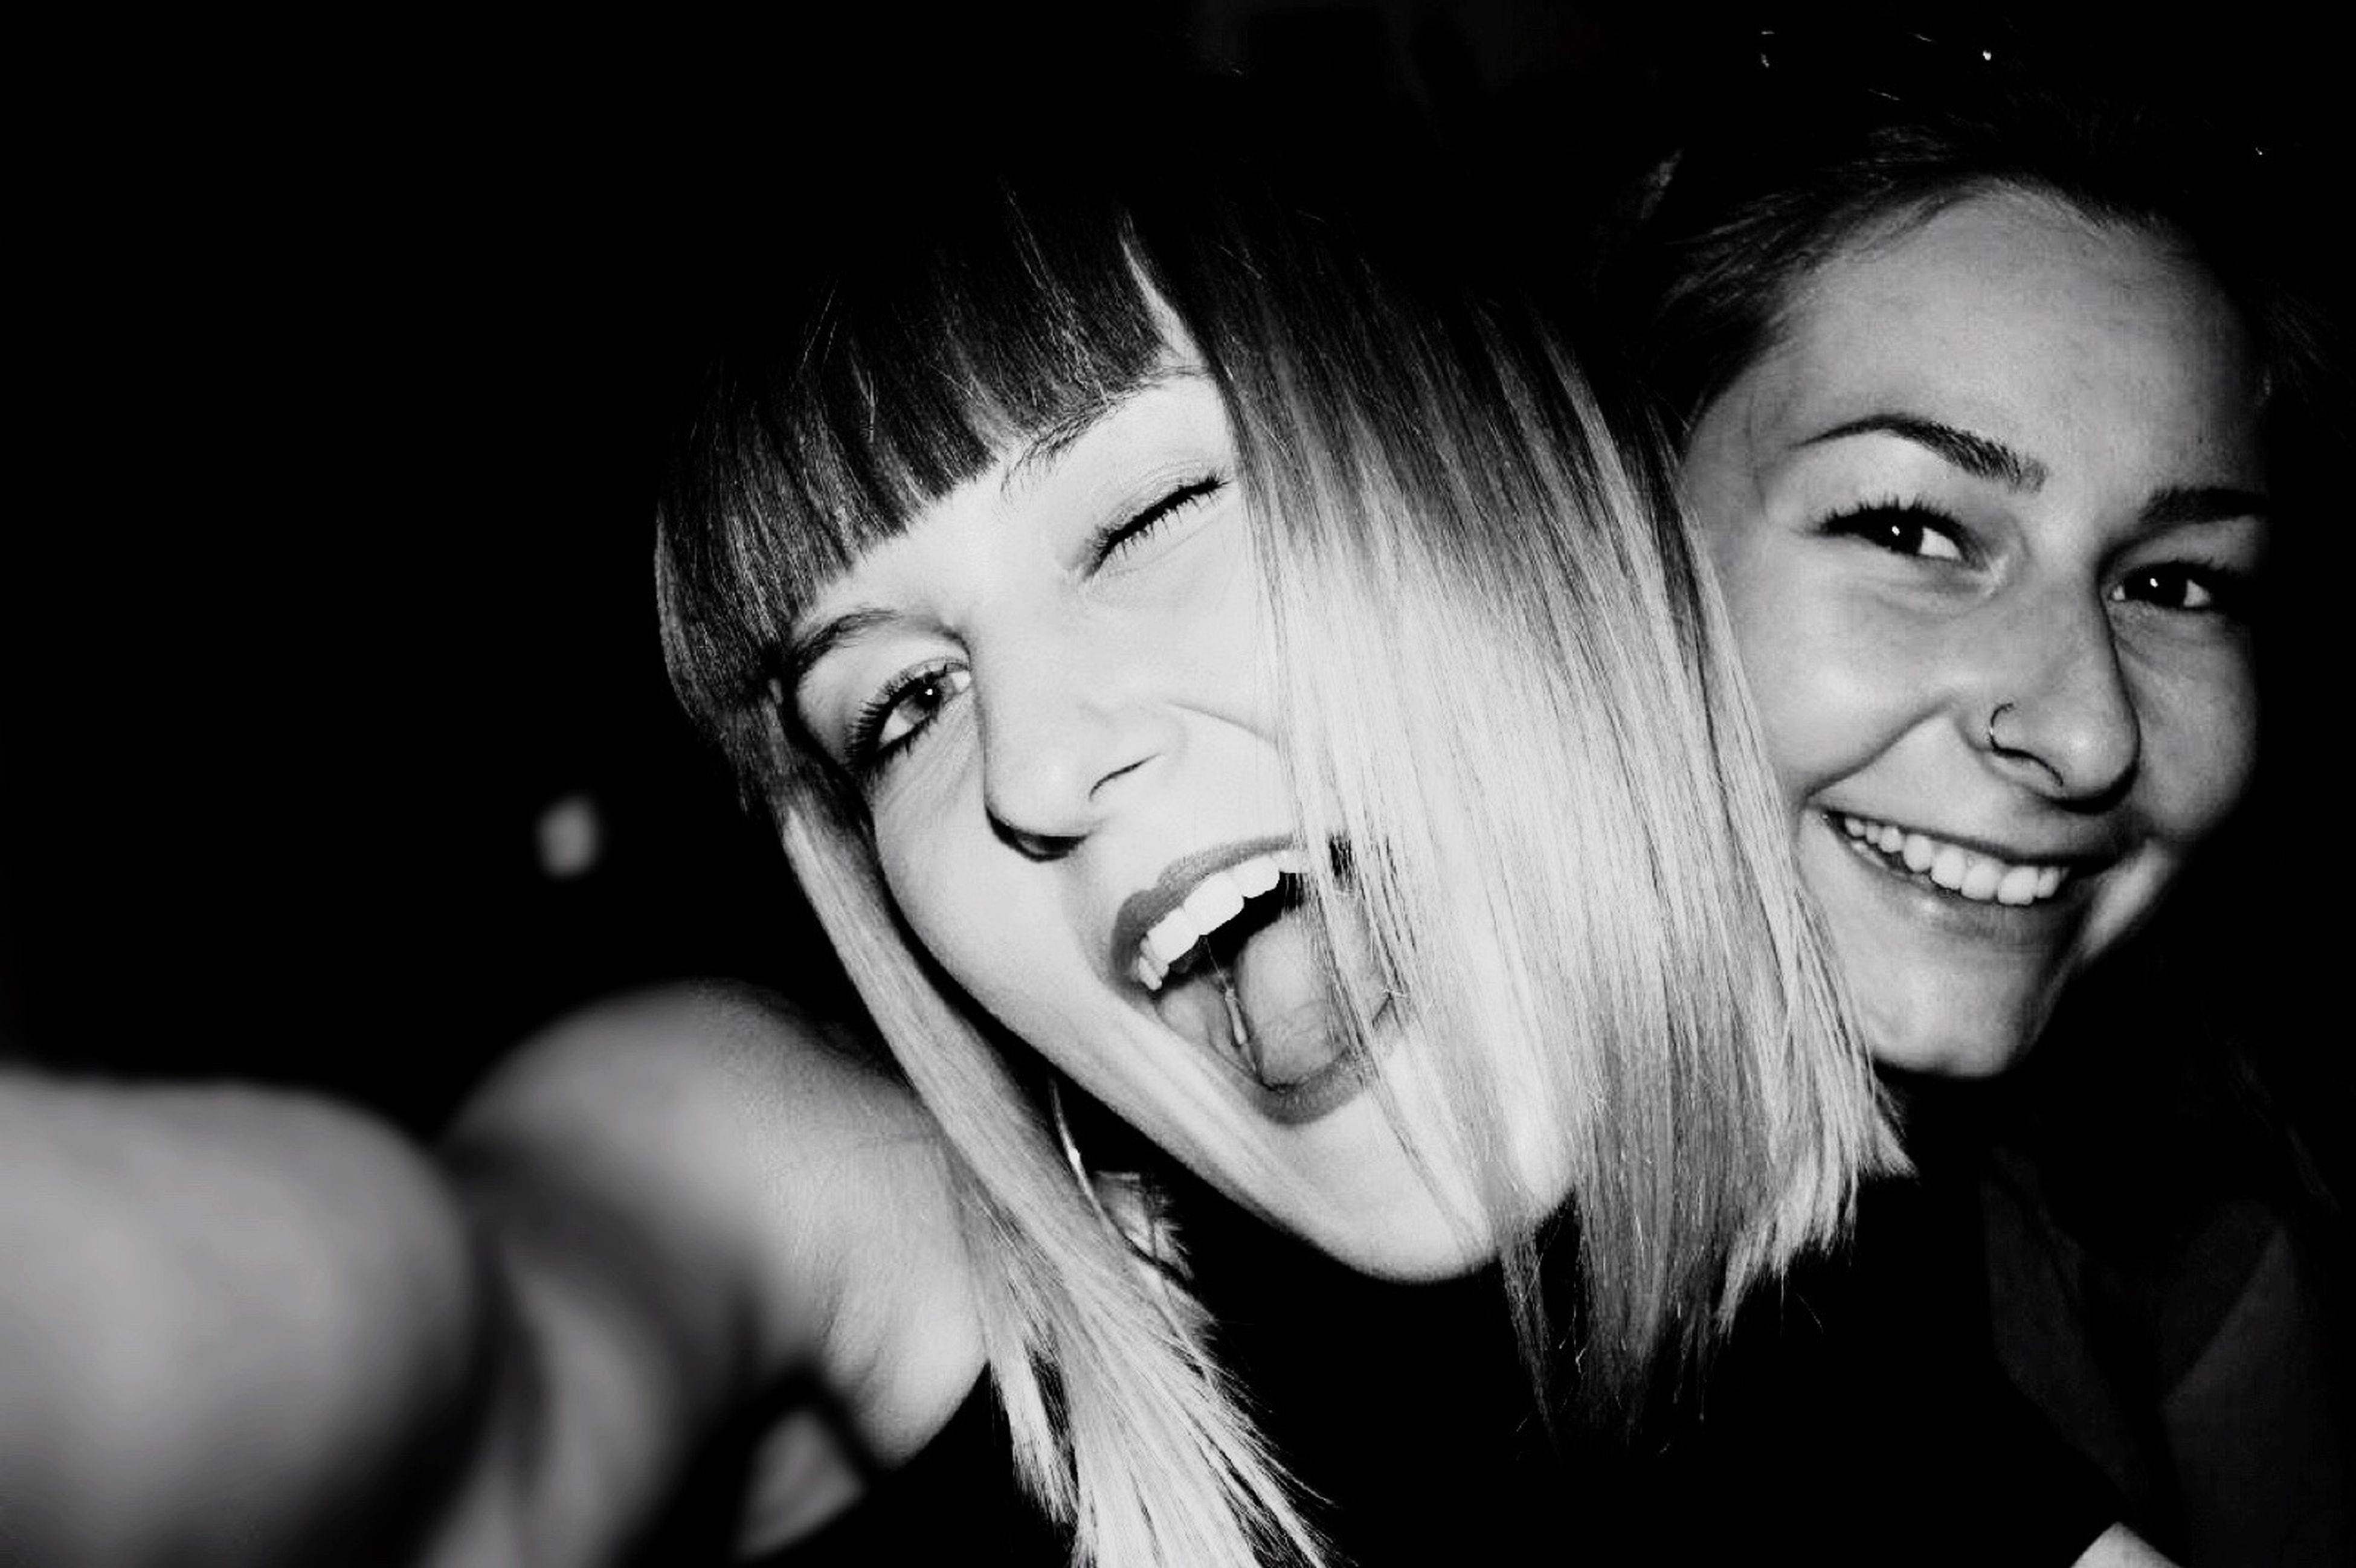 happiness, smiling, two people, young adult, young women, fun, looking at camera, real people, headshot, leisure activity, togetherness, cheerful, portrait, young men, enjoyment, friendship, night, lifestyles, indoors, beautiful woman, close-up, people